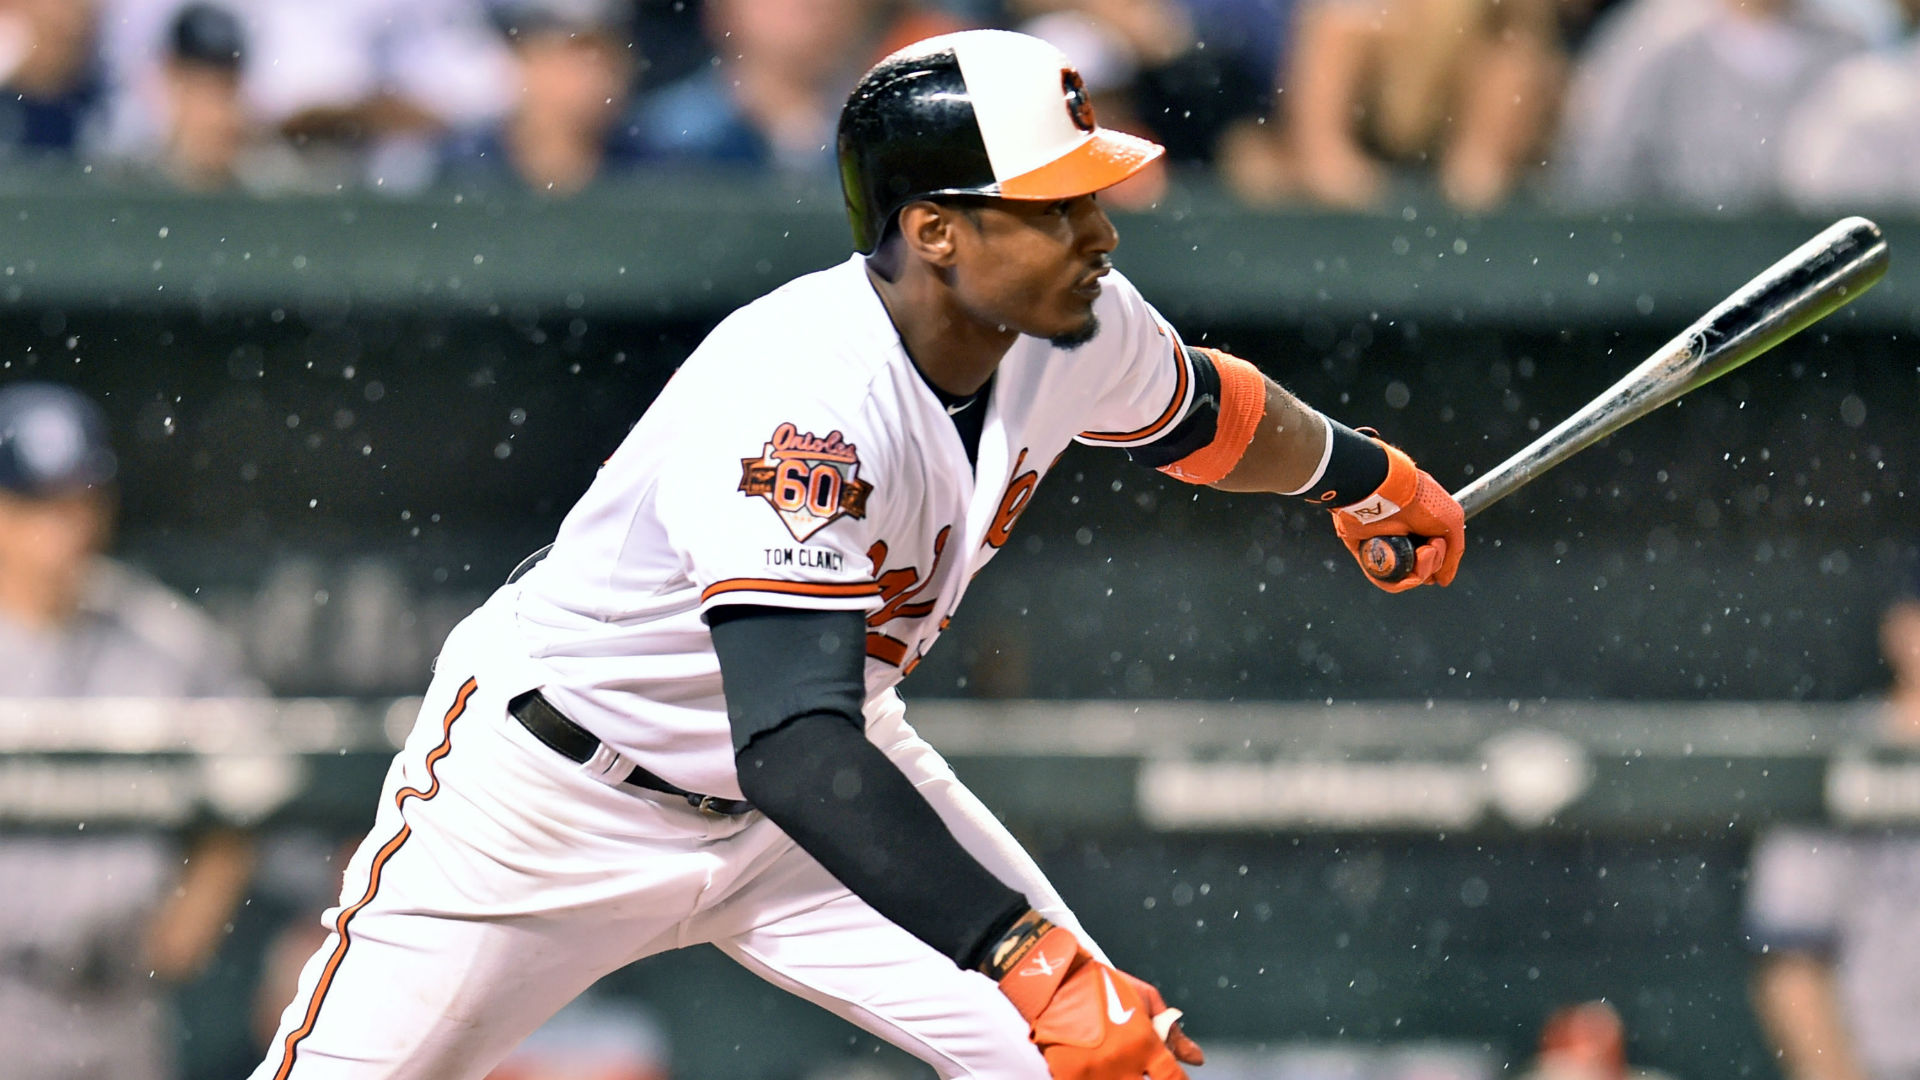 Daily fantasy baseball lineup: Monday's buy/sell picks in DraftKings leagues